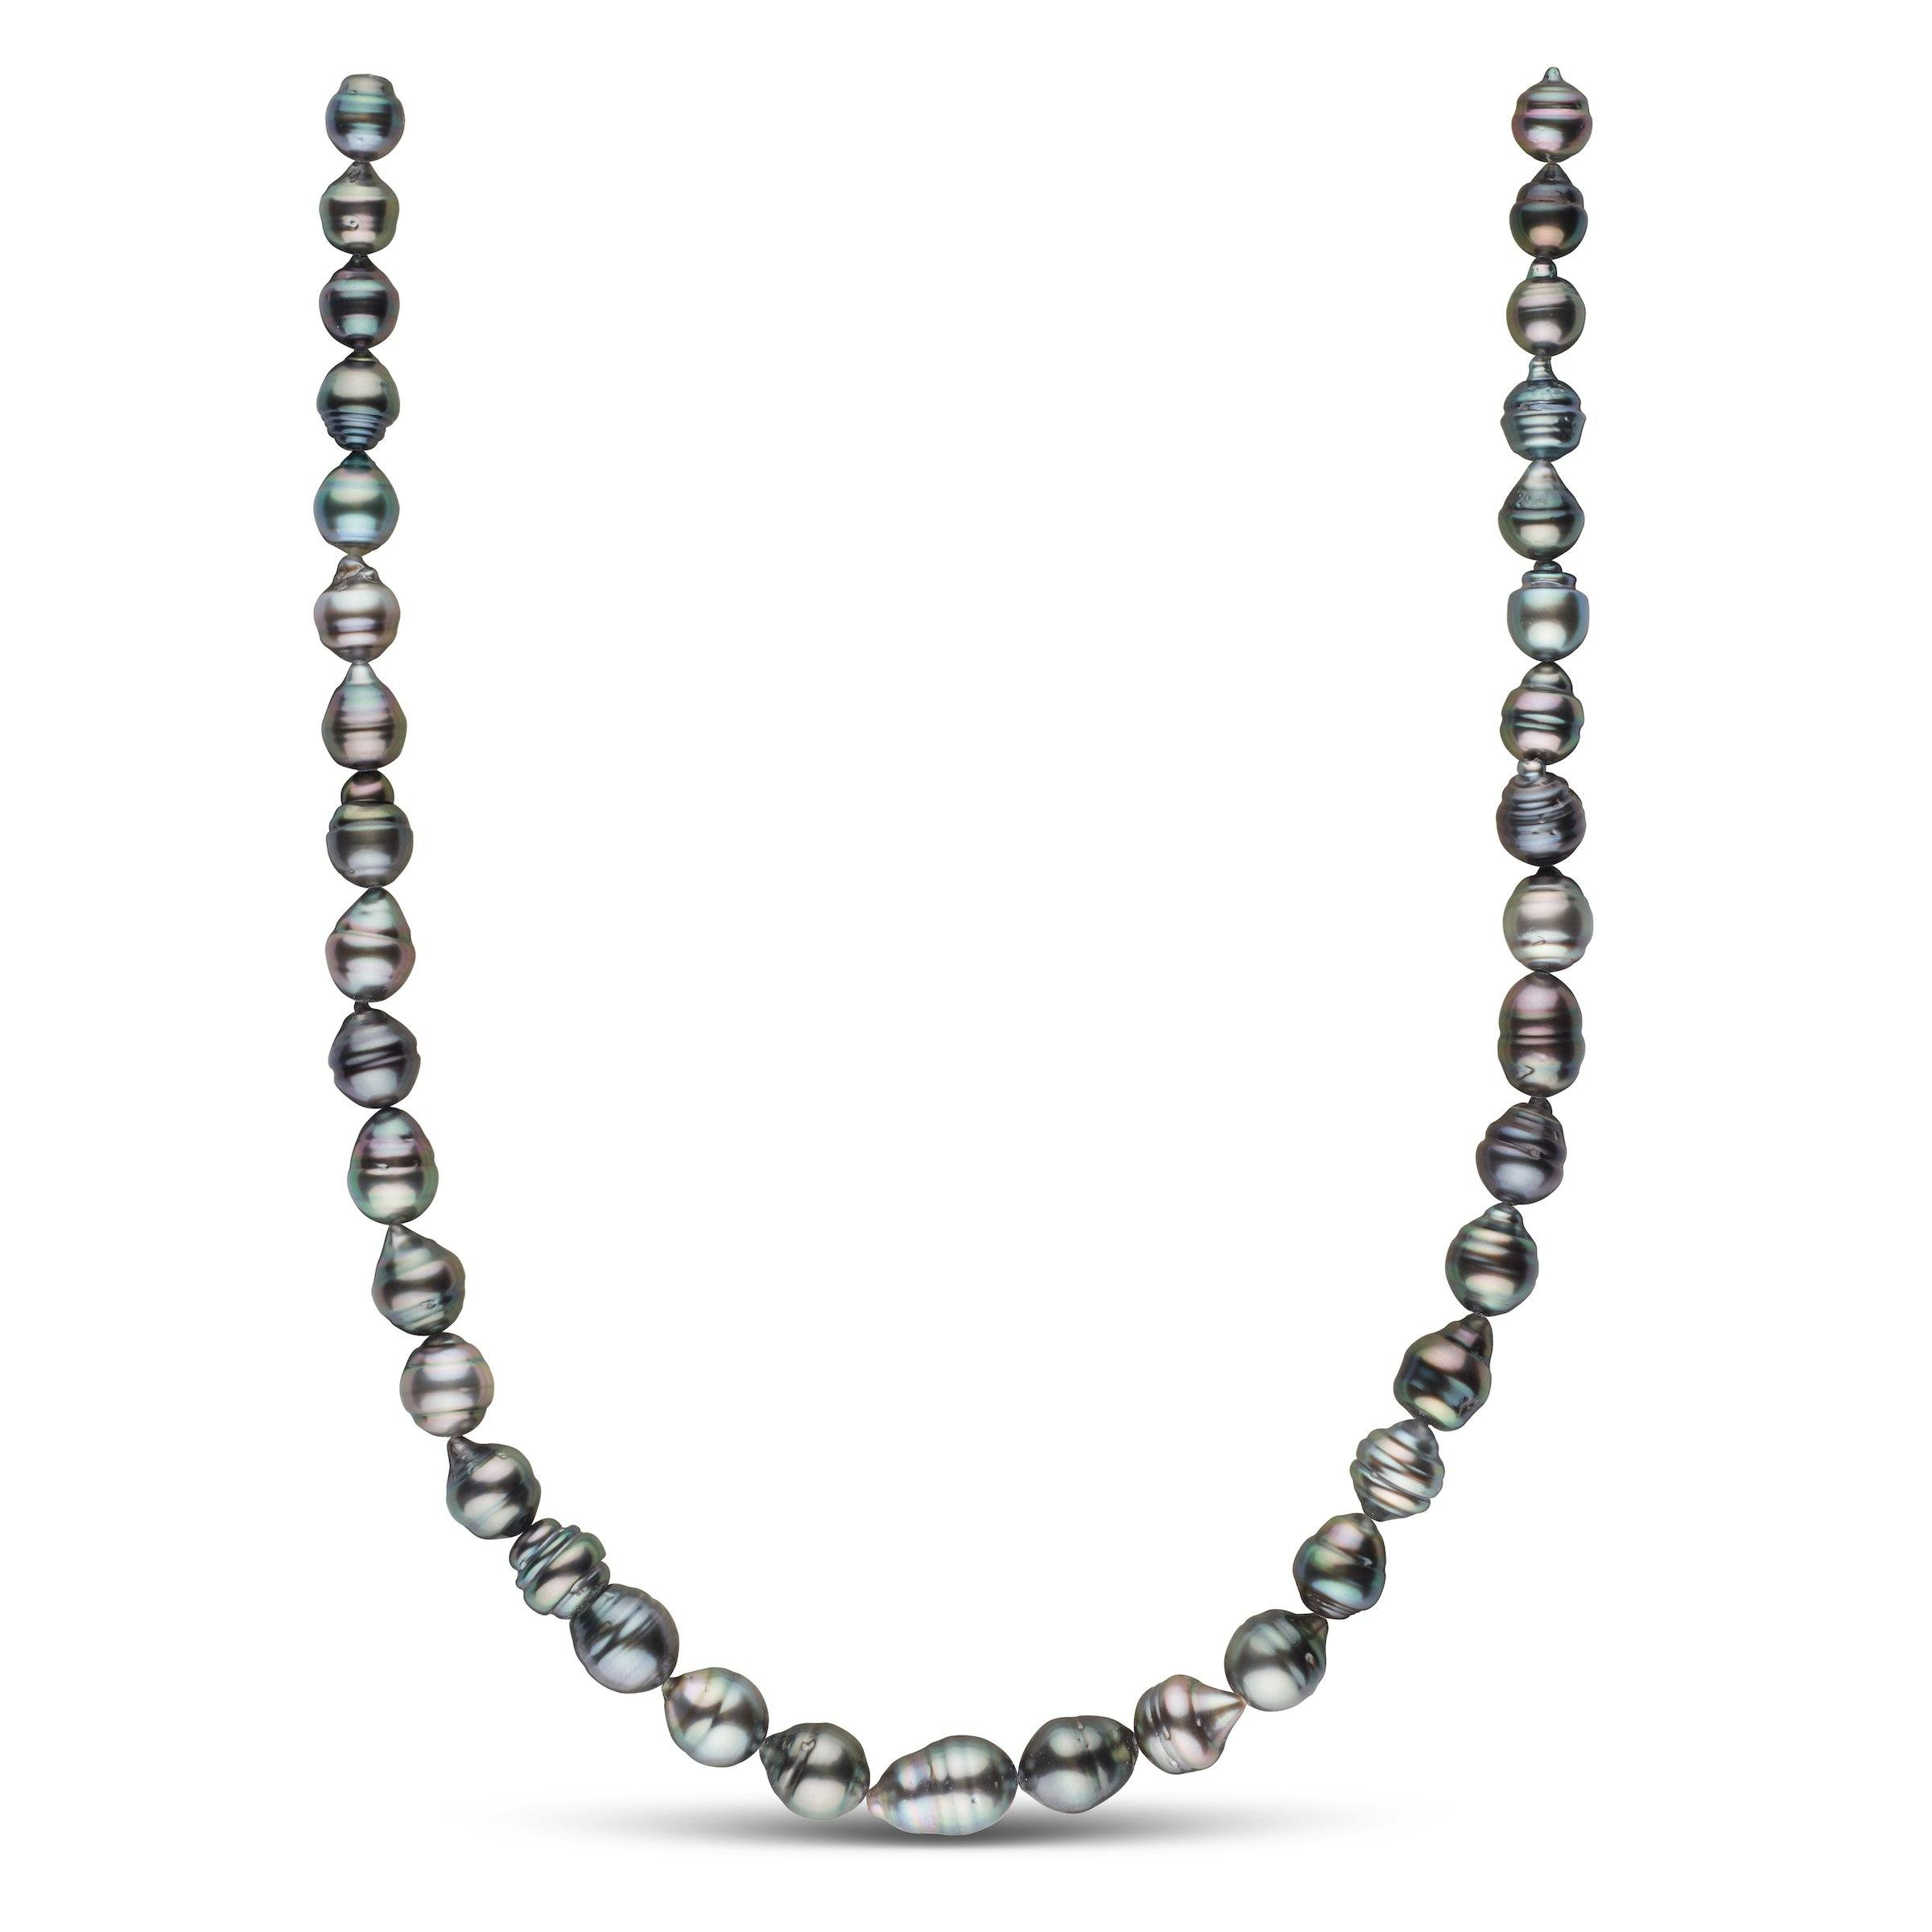 8.2-10.2 mm AA+ Tahitian Baroque Pearl Necklace